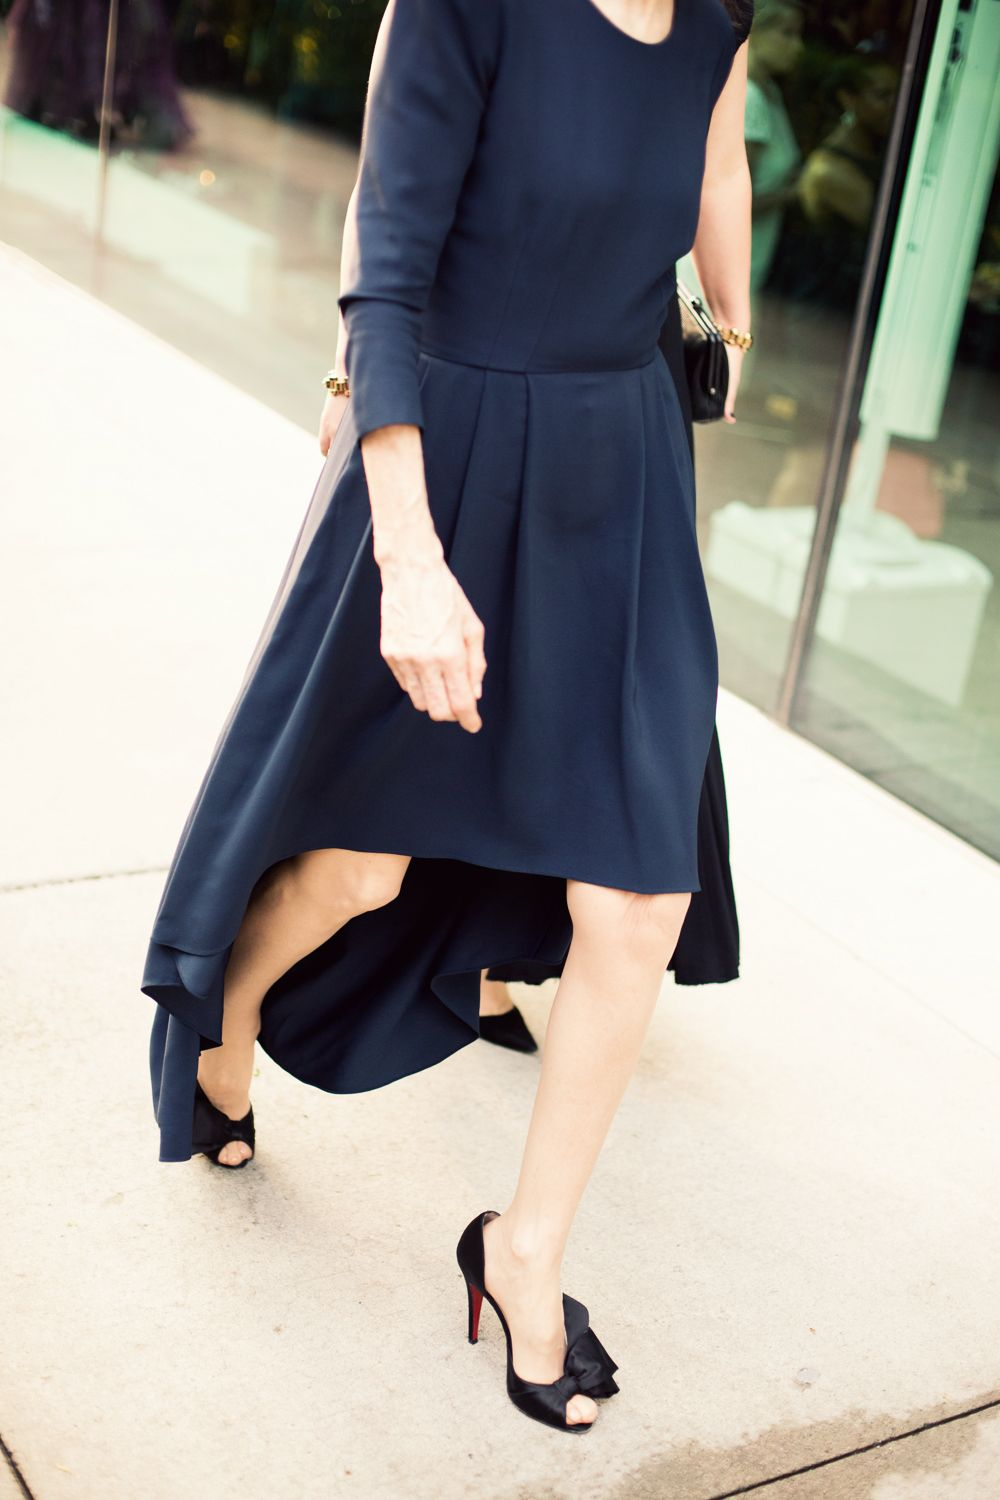 #details #CFDAawards #2013 Photo by Jamie Beck